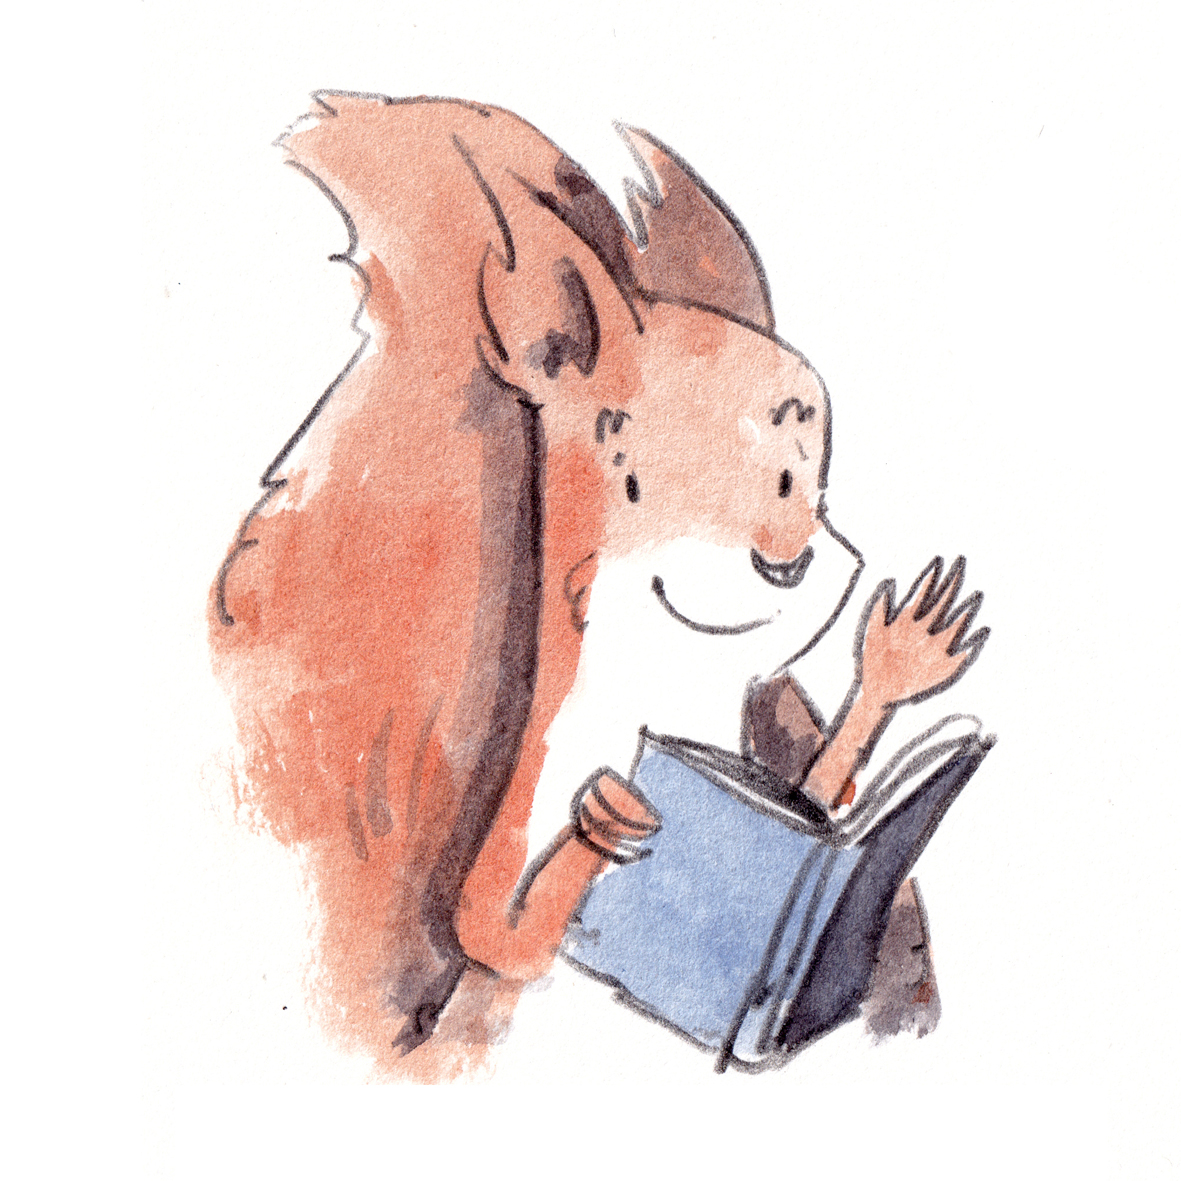 If your little one's under 5, take them along to @HfdsLibraries  on #WorldBookDay  and be part of the amazing new Squirrel Club! Join Squirrels reading journey and collect a fabulous free sticker every time you visit or borrow a book. Visit  http://ow.ly/uRKM50y2OQK    🖼️